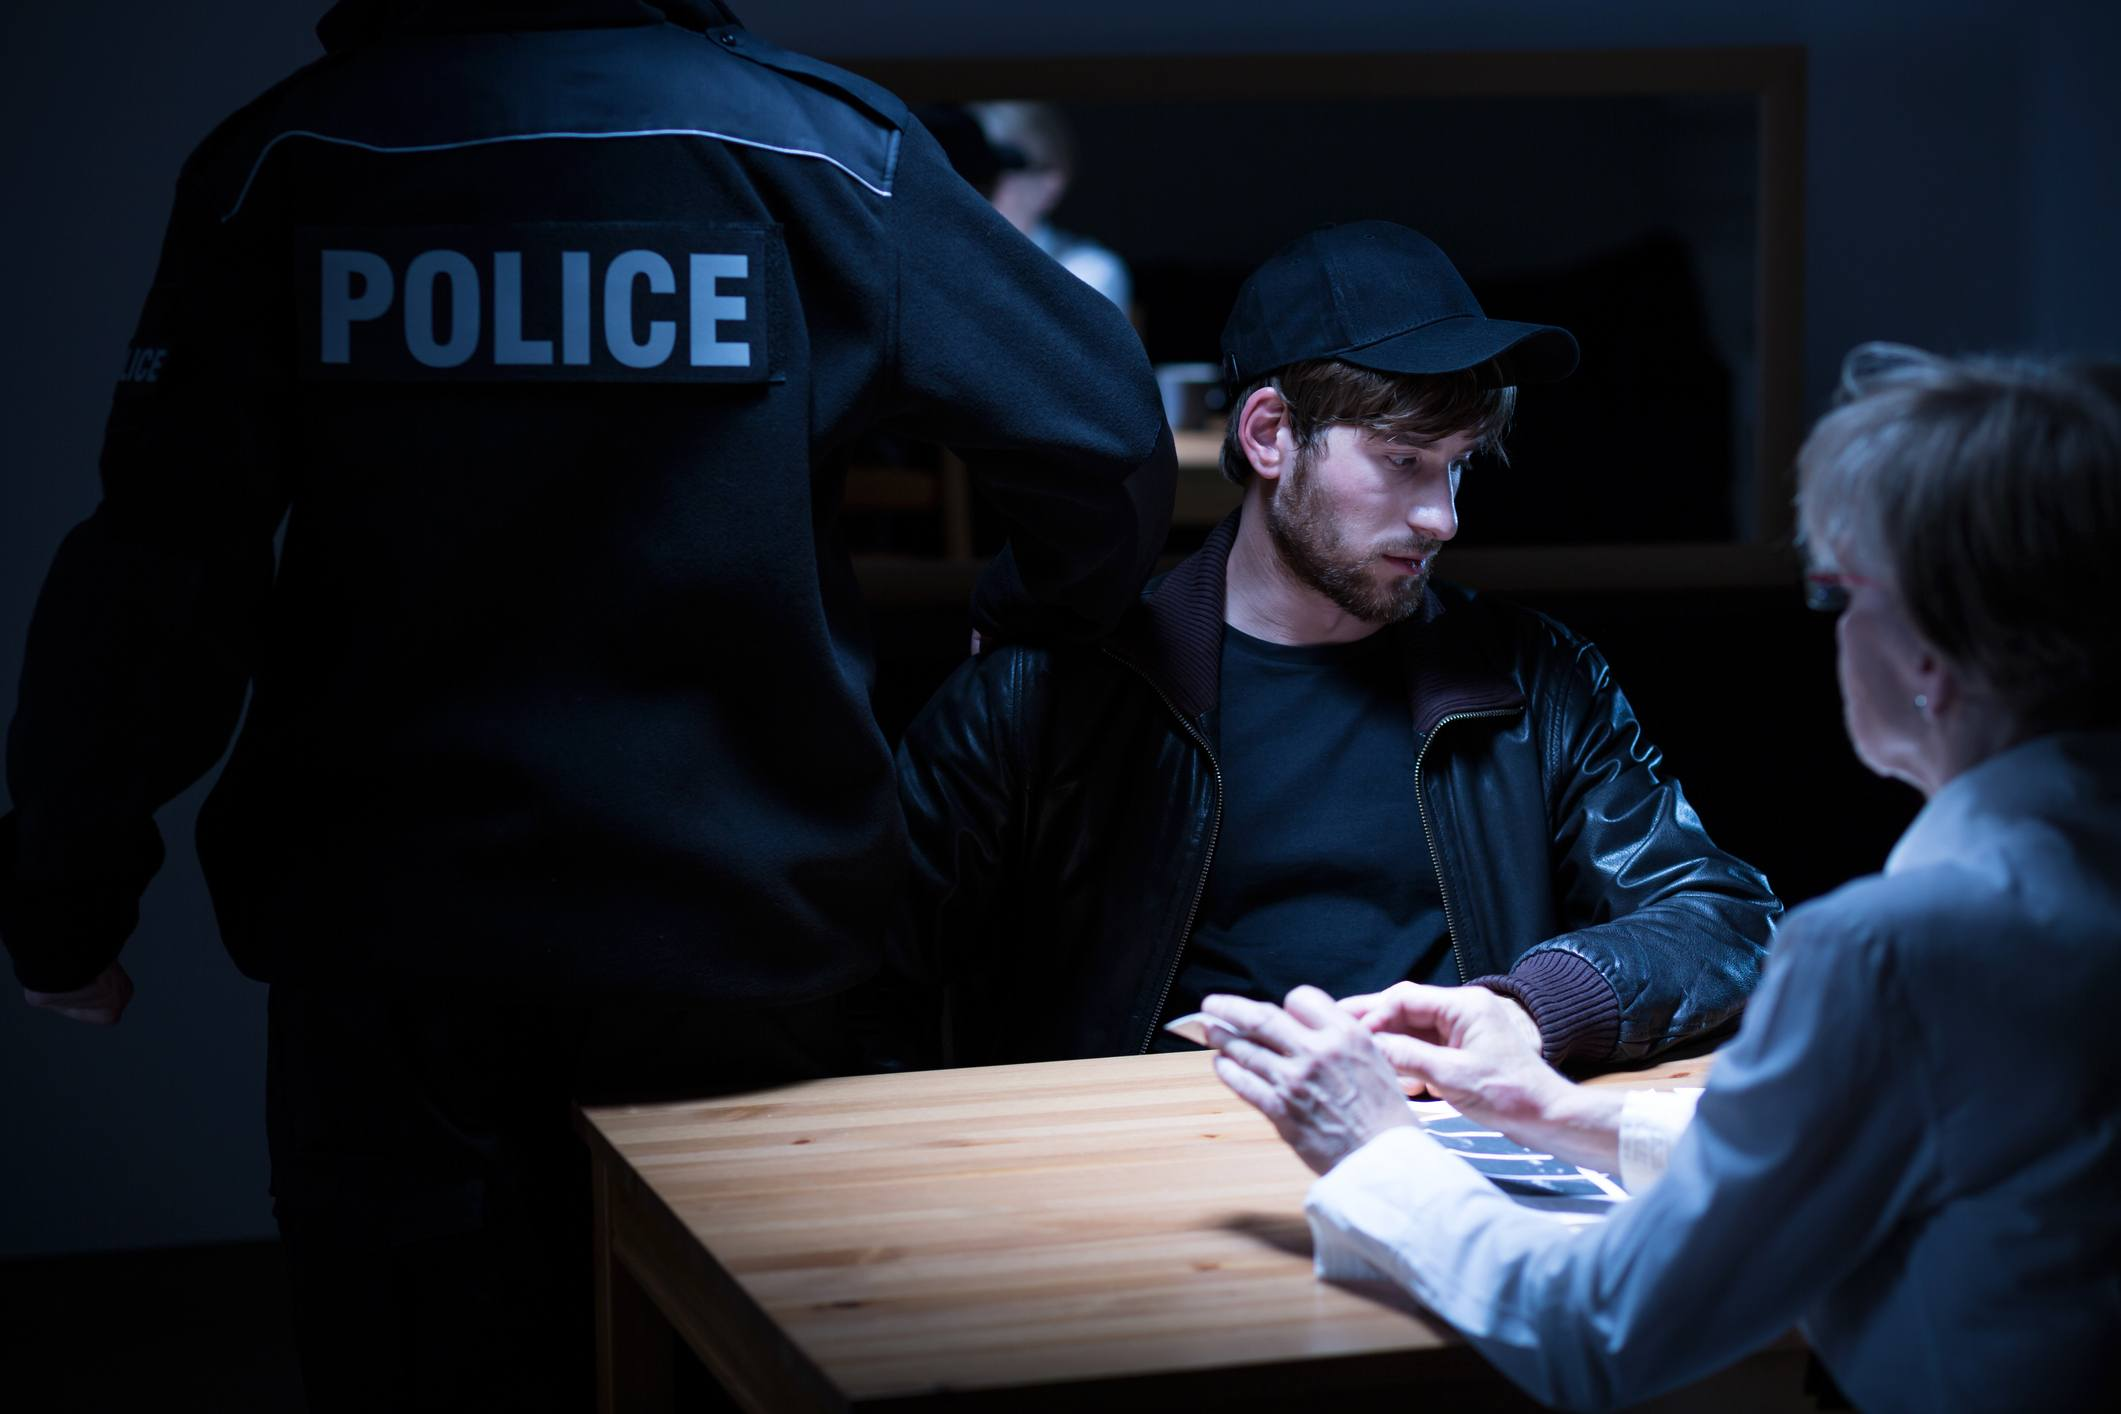 Policeman, suspect and female agent